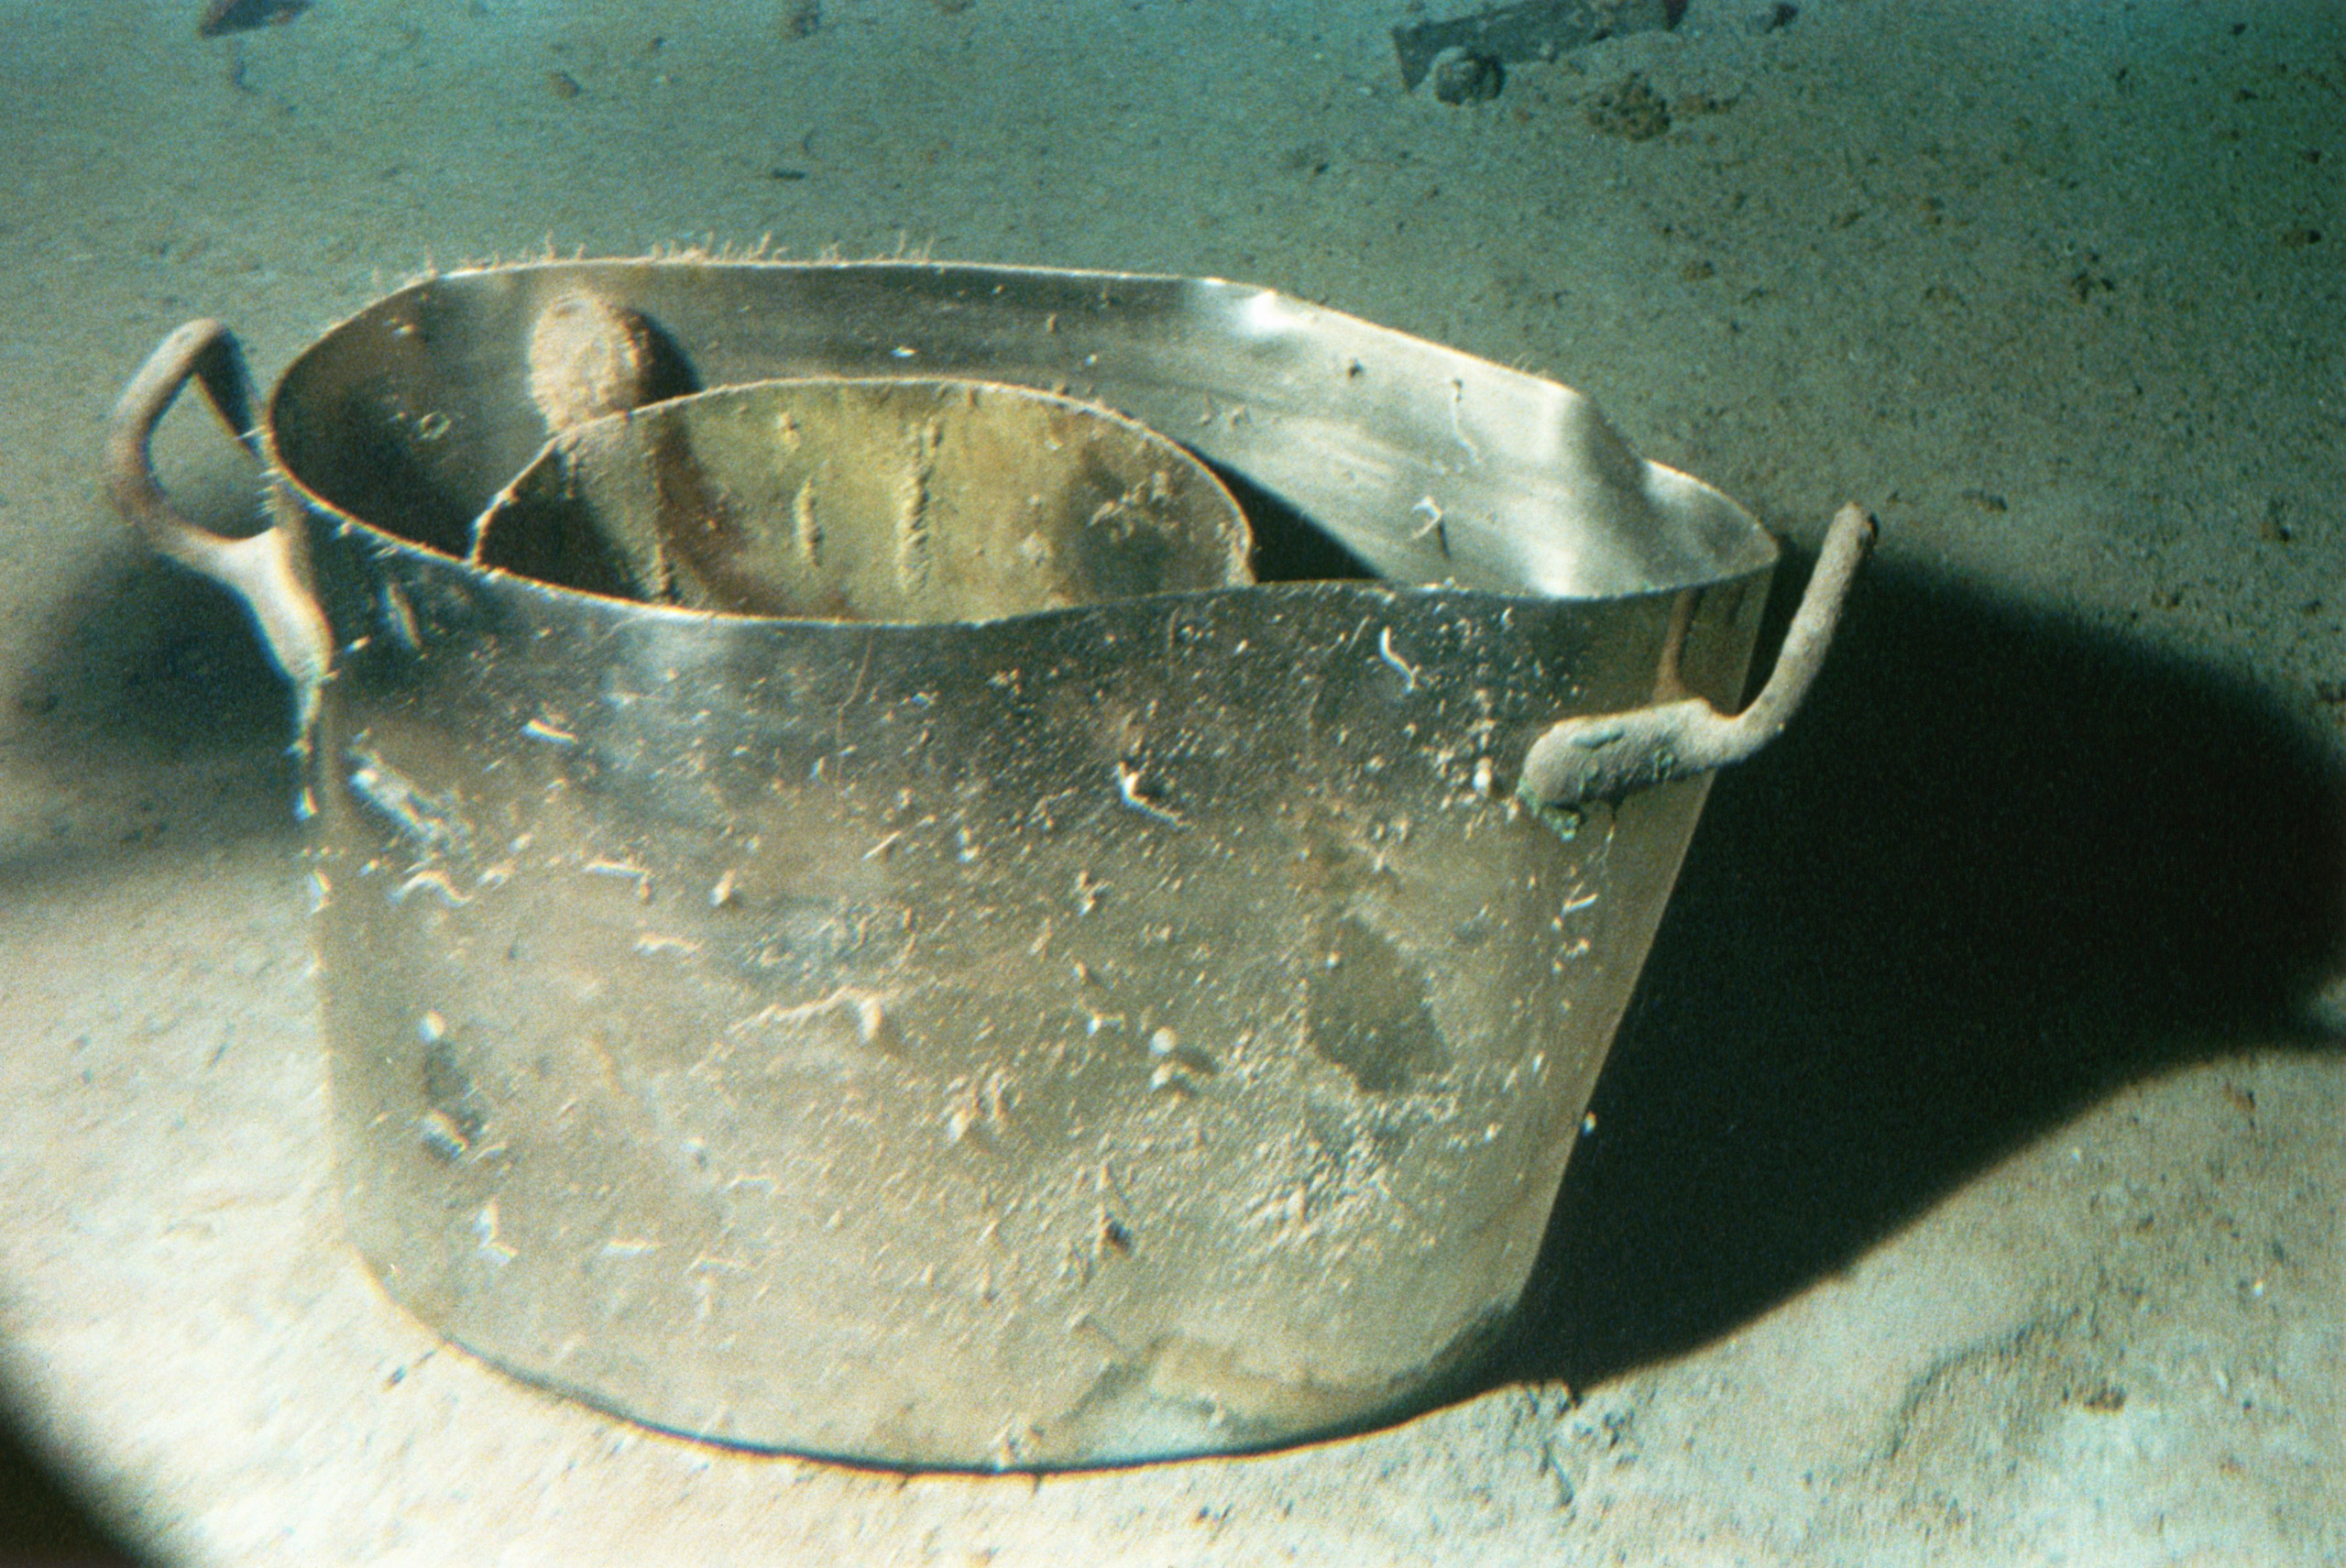 ca.1987-1991 --- Cooking Pots from Titanic Shipwreck.